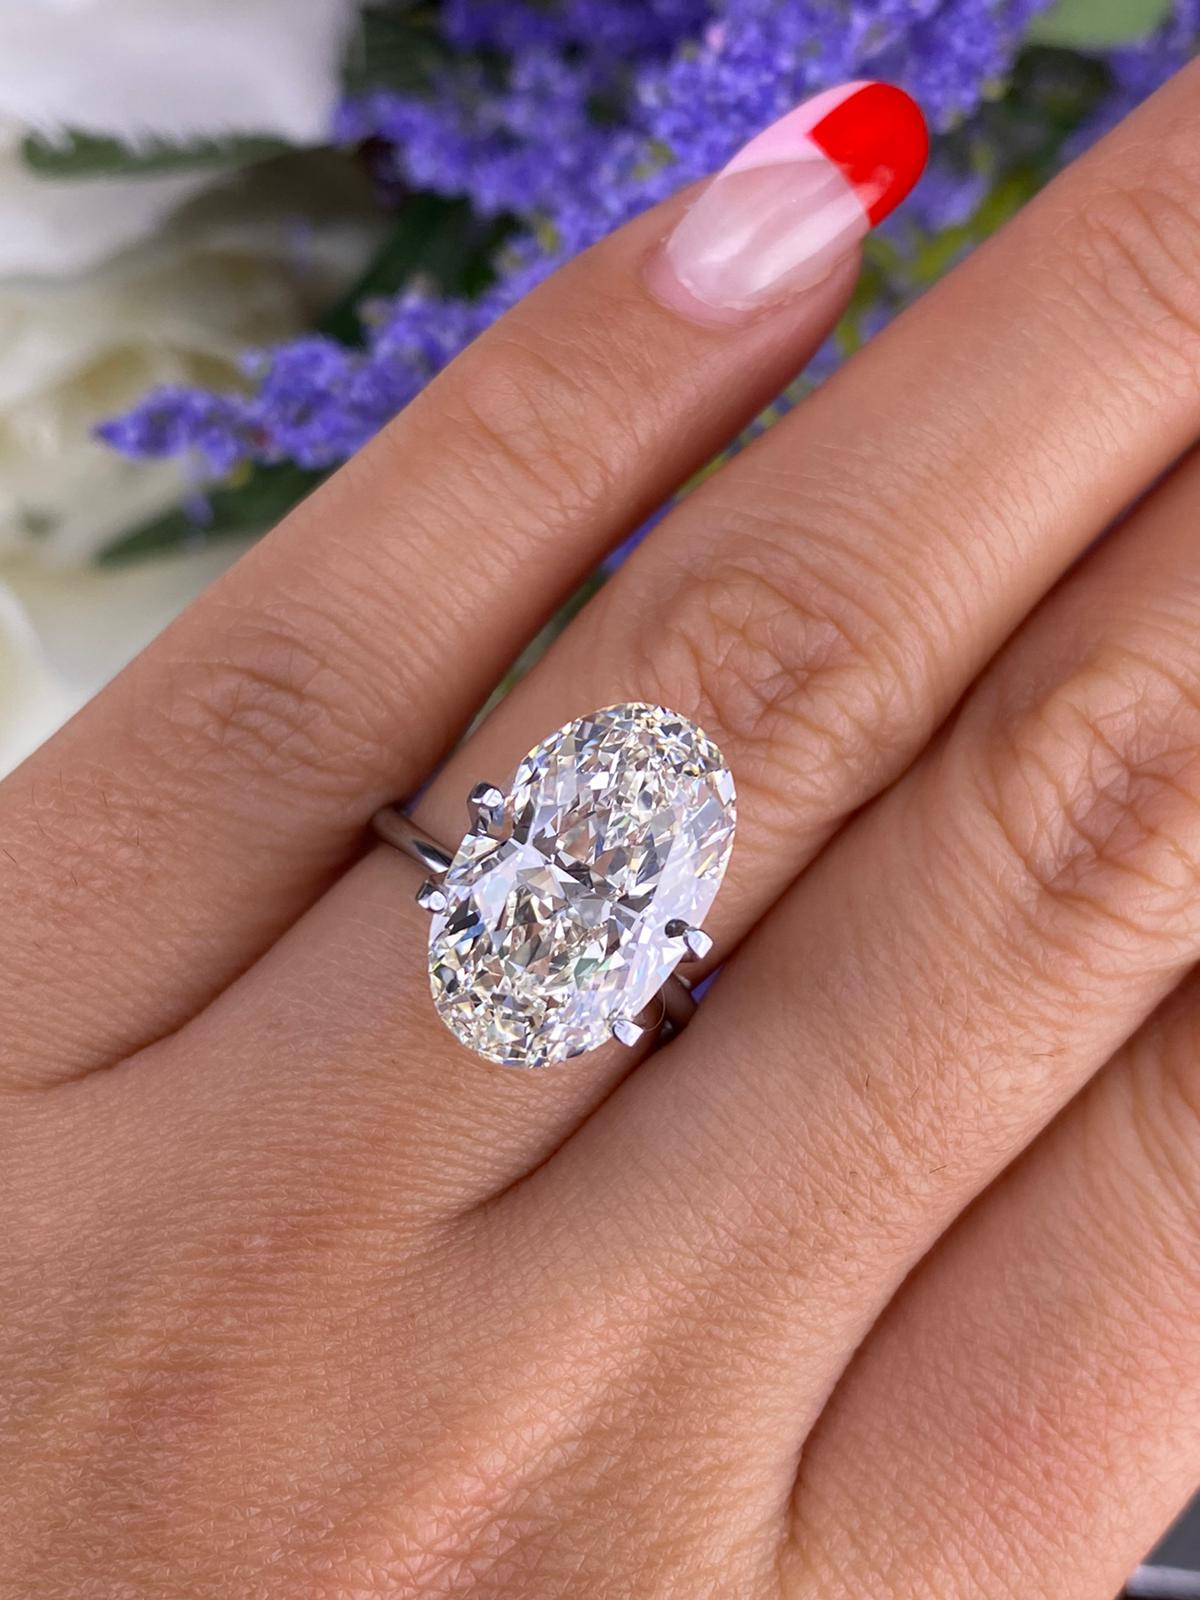 What Is The Price Of A 8 Carat Diamond